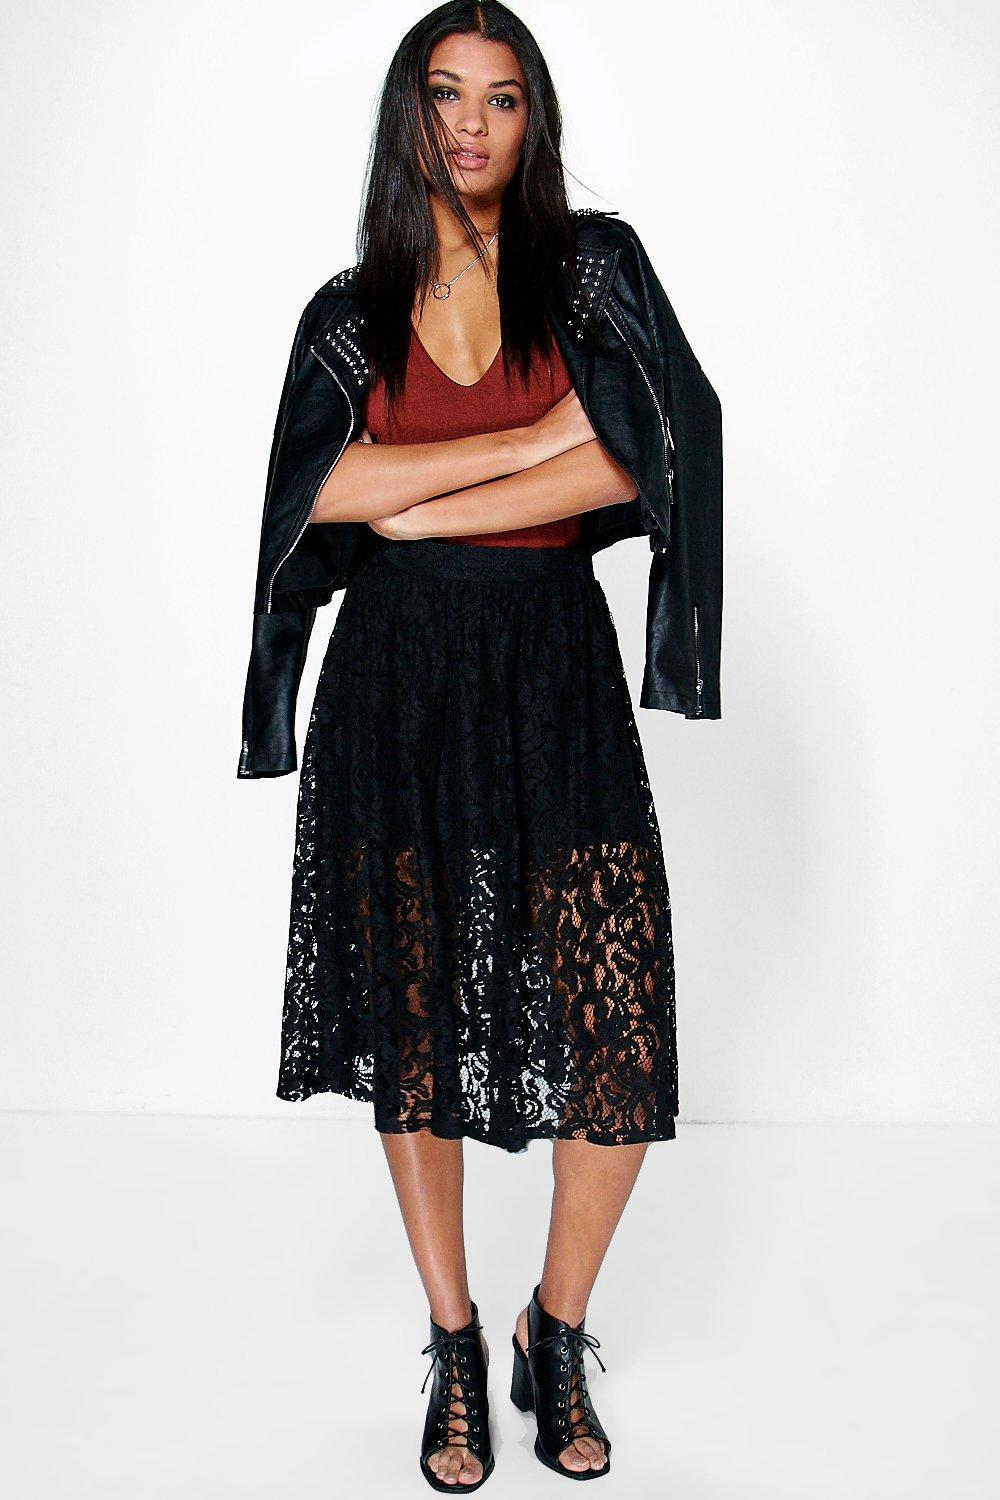 Full Lace Knee Length Skirt Nude - length: below the knee; style: full/prom skirt; fit: loose/voluminous; waist: high rise; predominant colour: black; occasions: evening; fibres: polyester/polyamide - stretch; hip detail: soft pleats at hip/draping at hip/flared at hip; texture group: lace; pattern type: fabric; pattern: patterned/print; embellishment: lace; season: s/s 2016; wardrobe: event